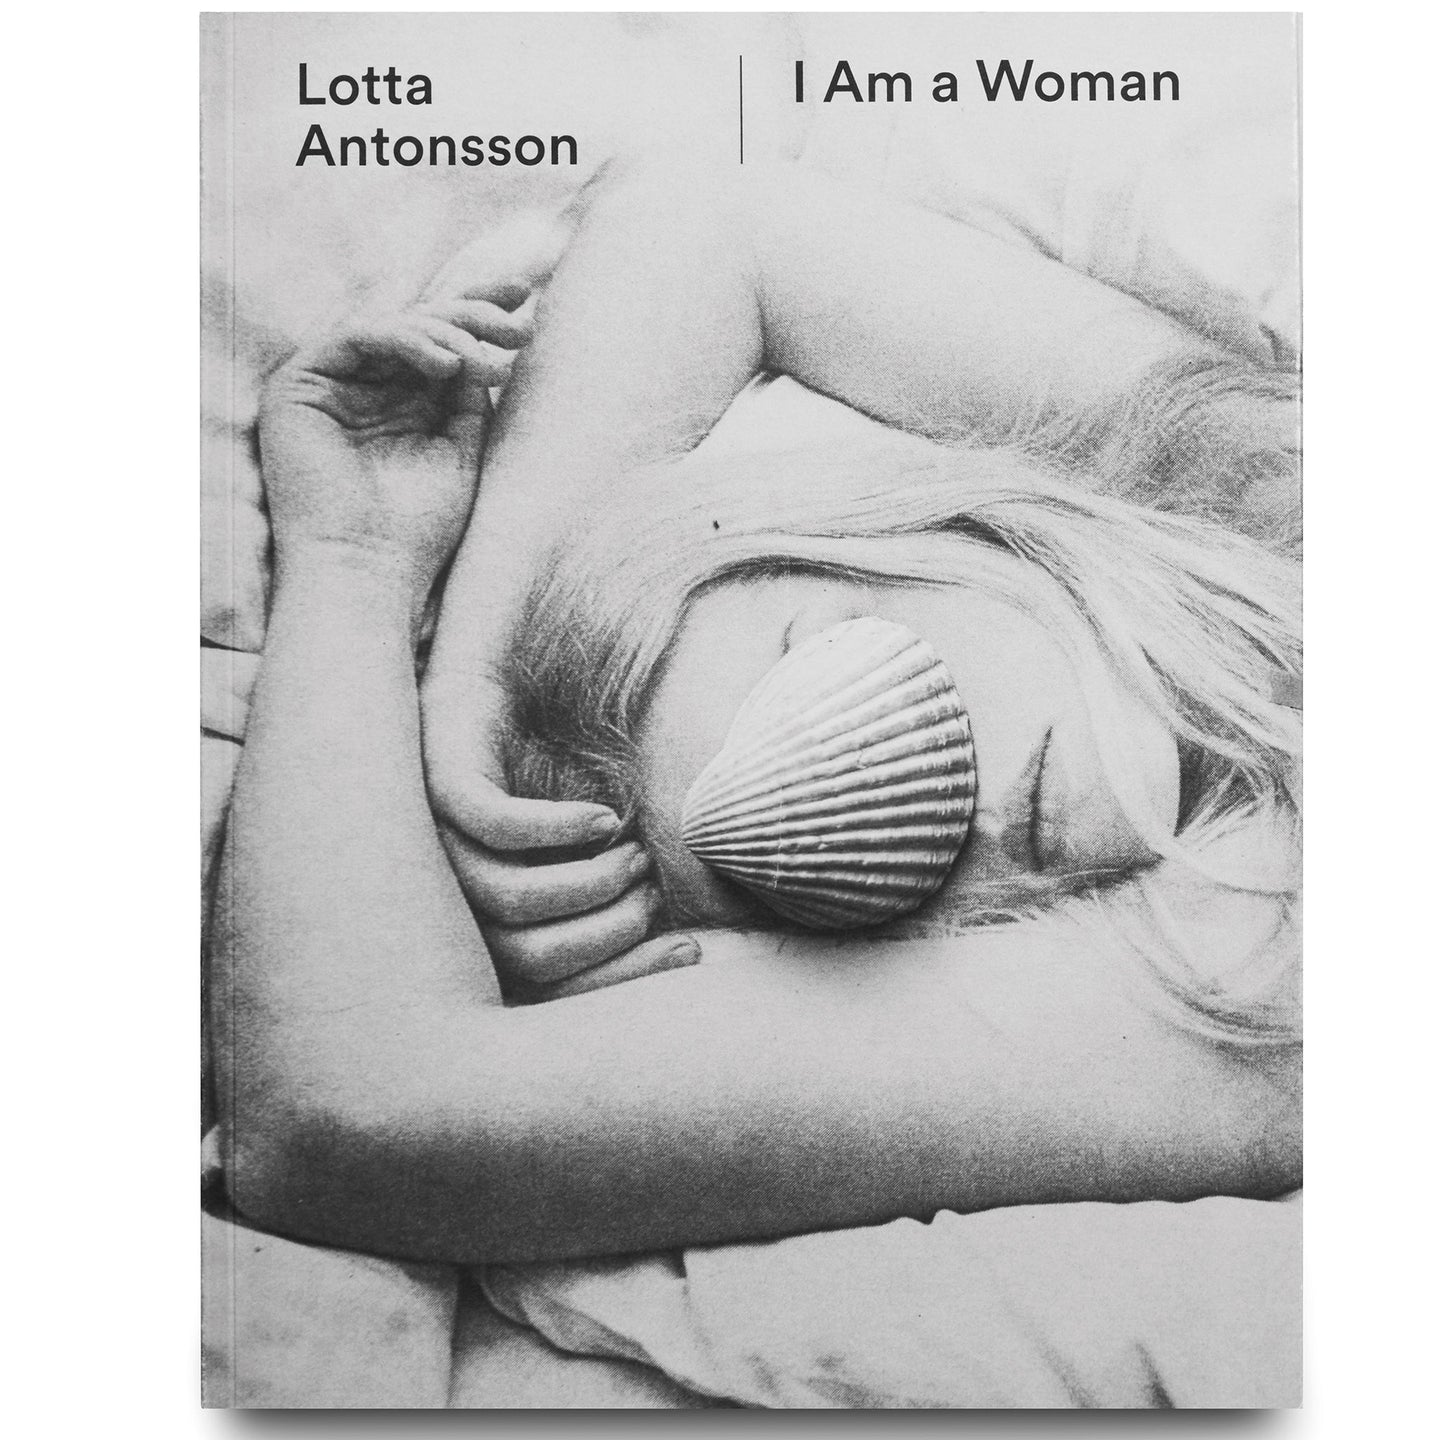 LOTTA ANTONSSON: I AM A WOMAN